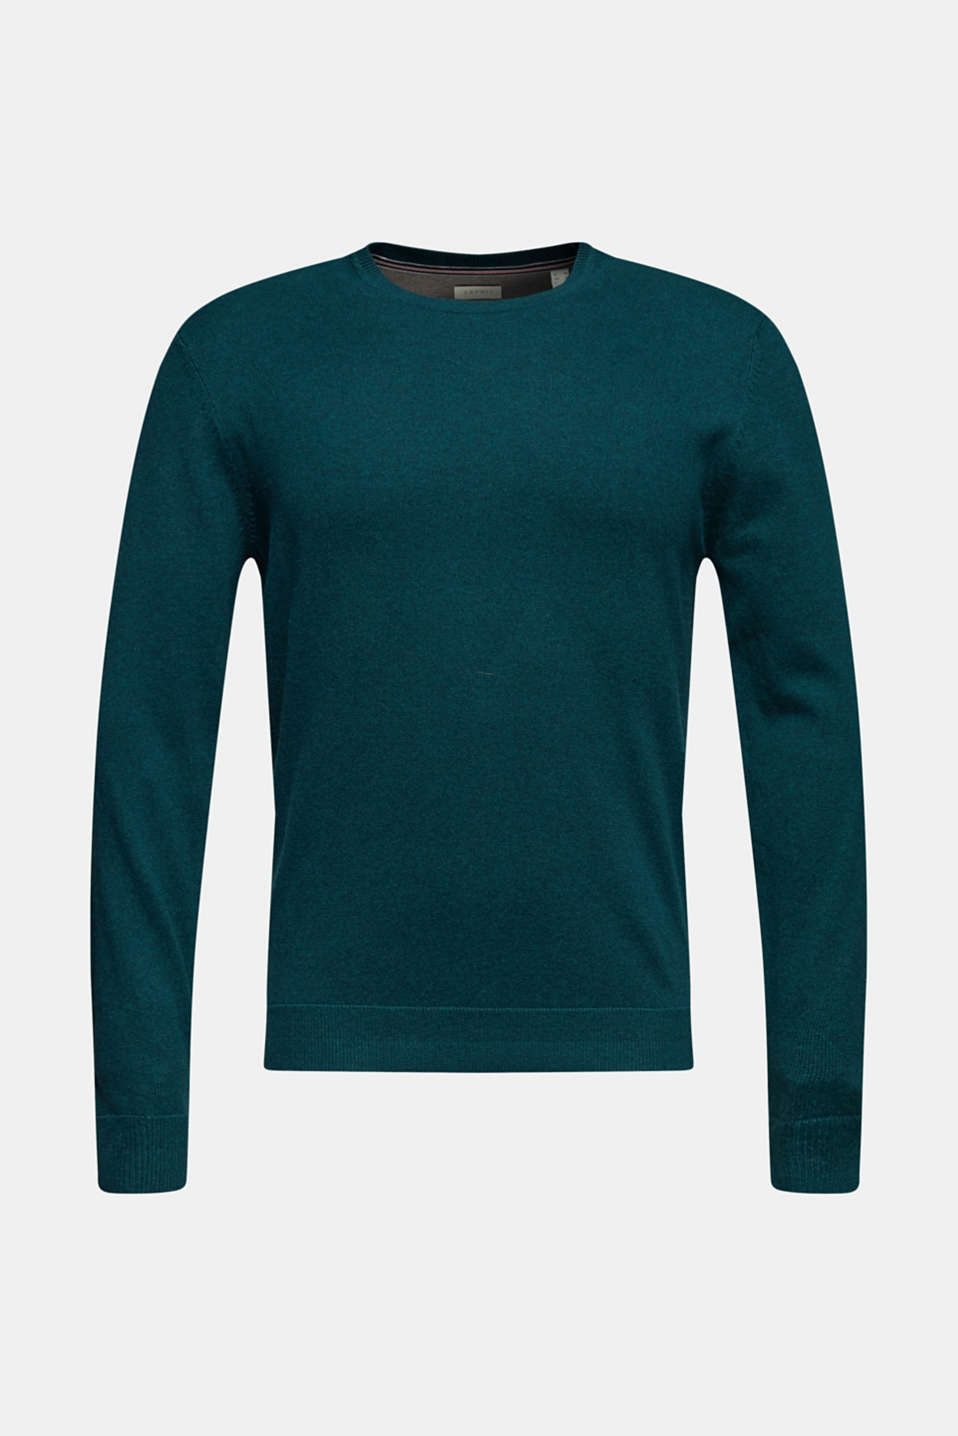 Sweaters, TEAL GREEN, detail image number 7